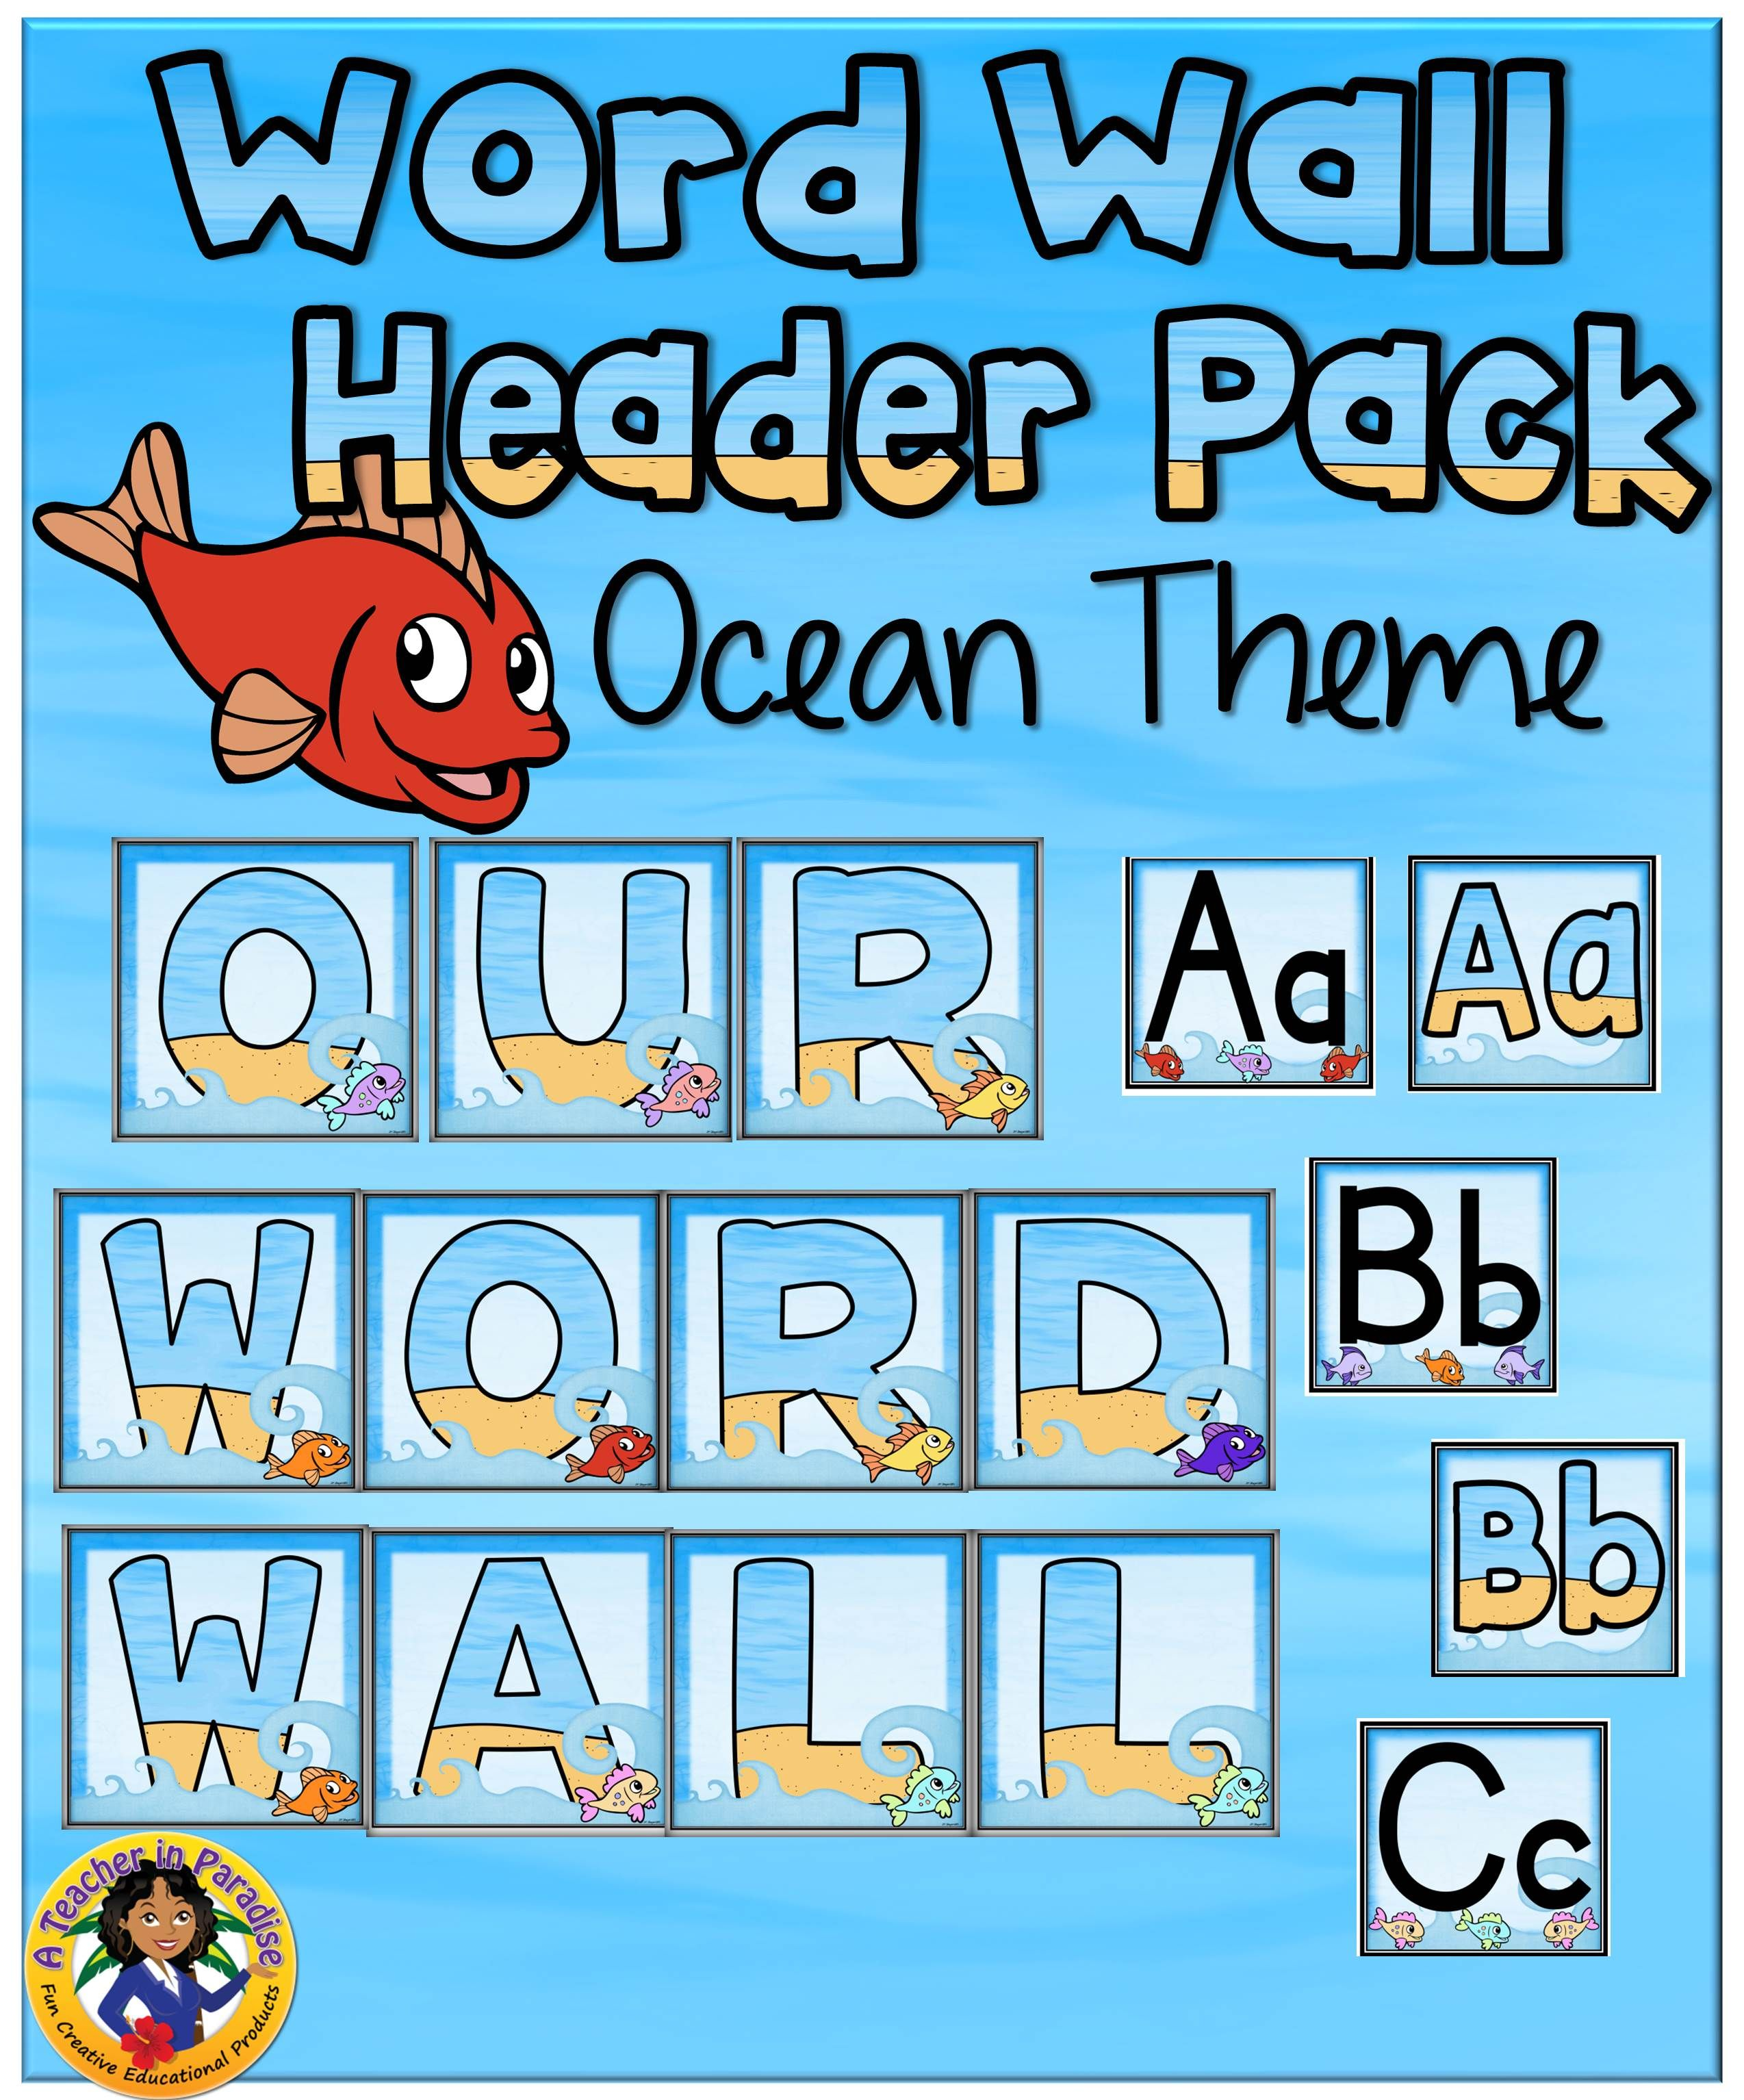 Word Wall Letters Ocean Theme Word Wall Banner And Headers Set  Word Wall Letters